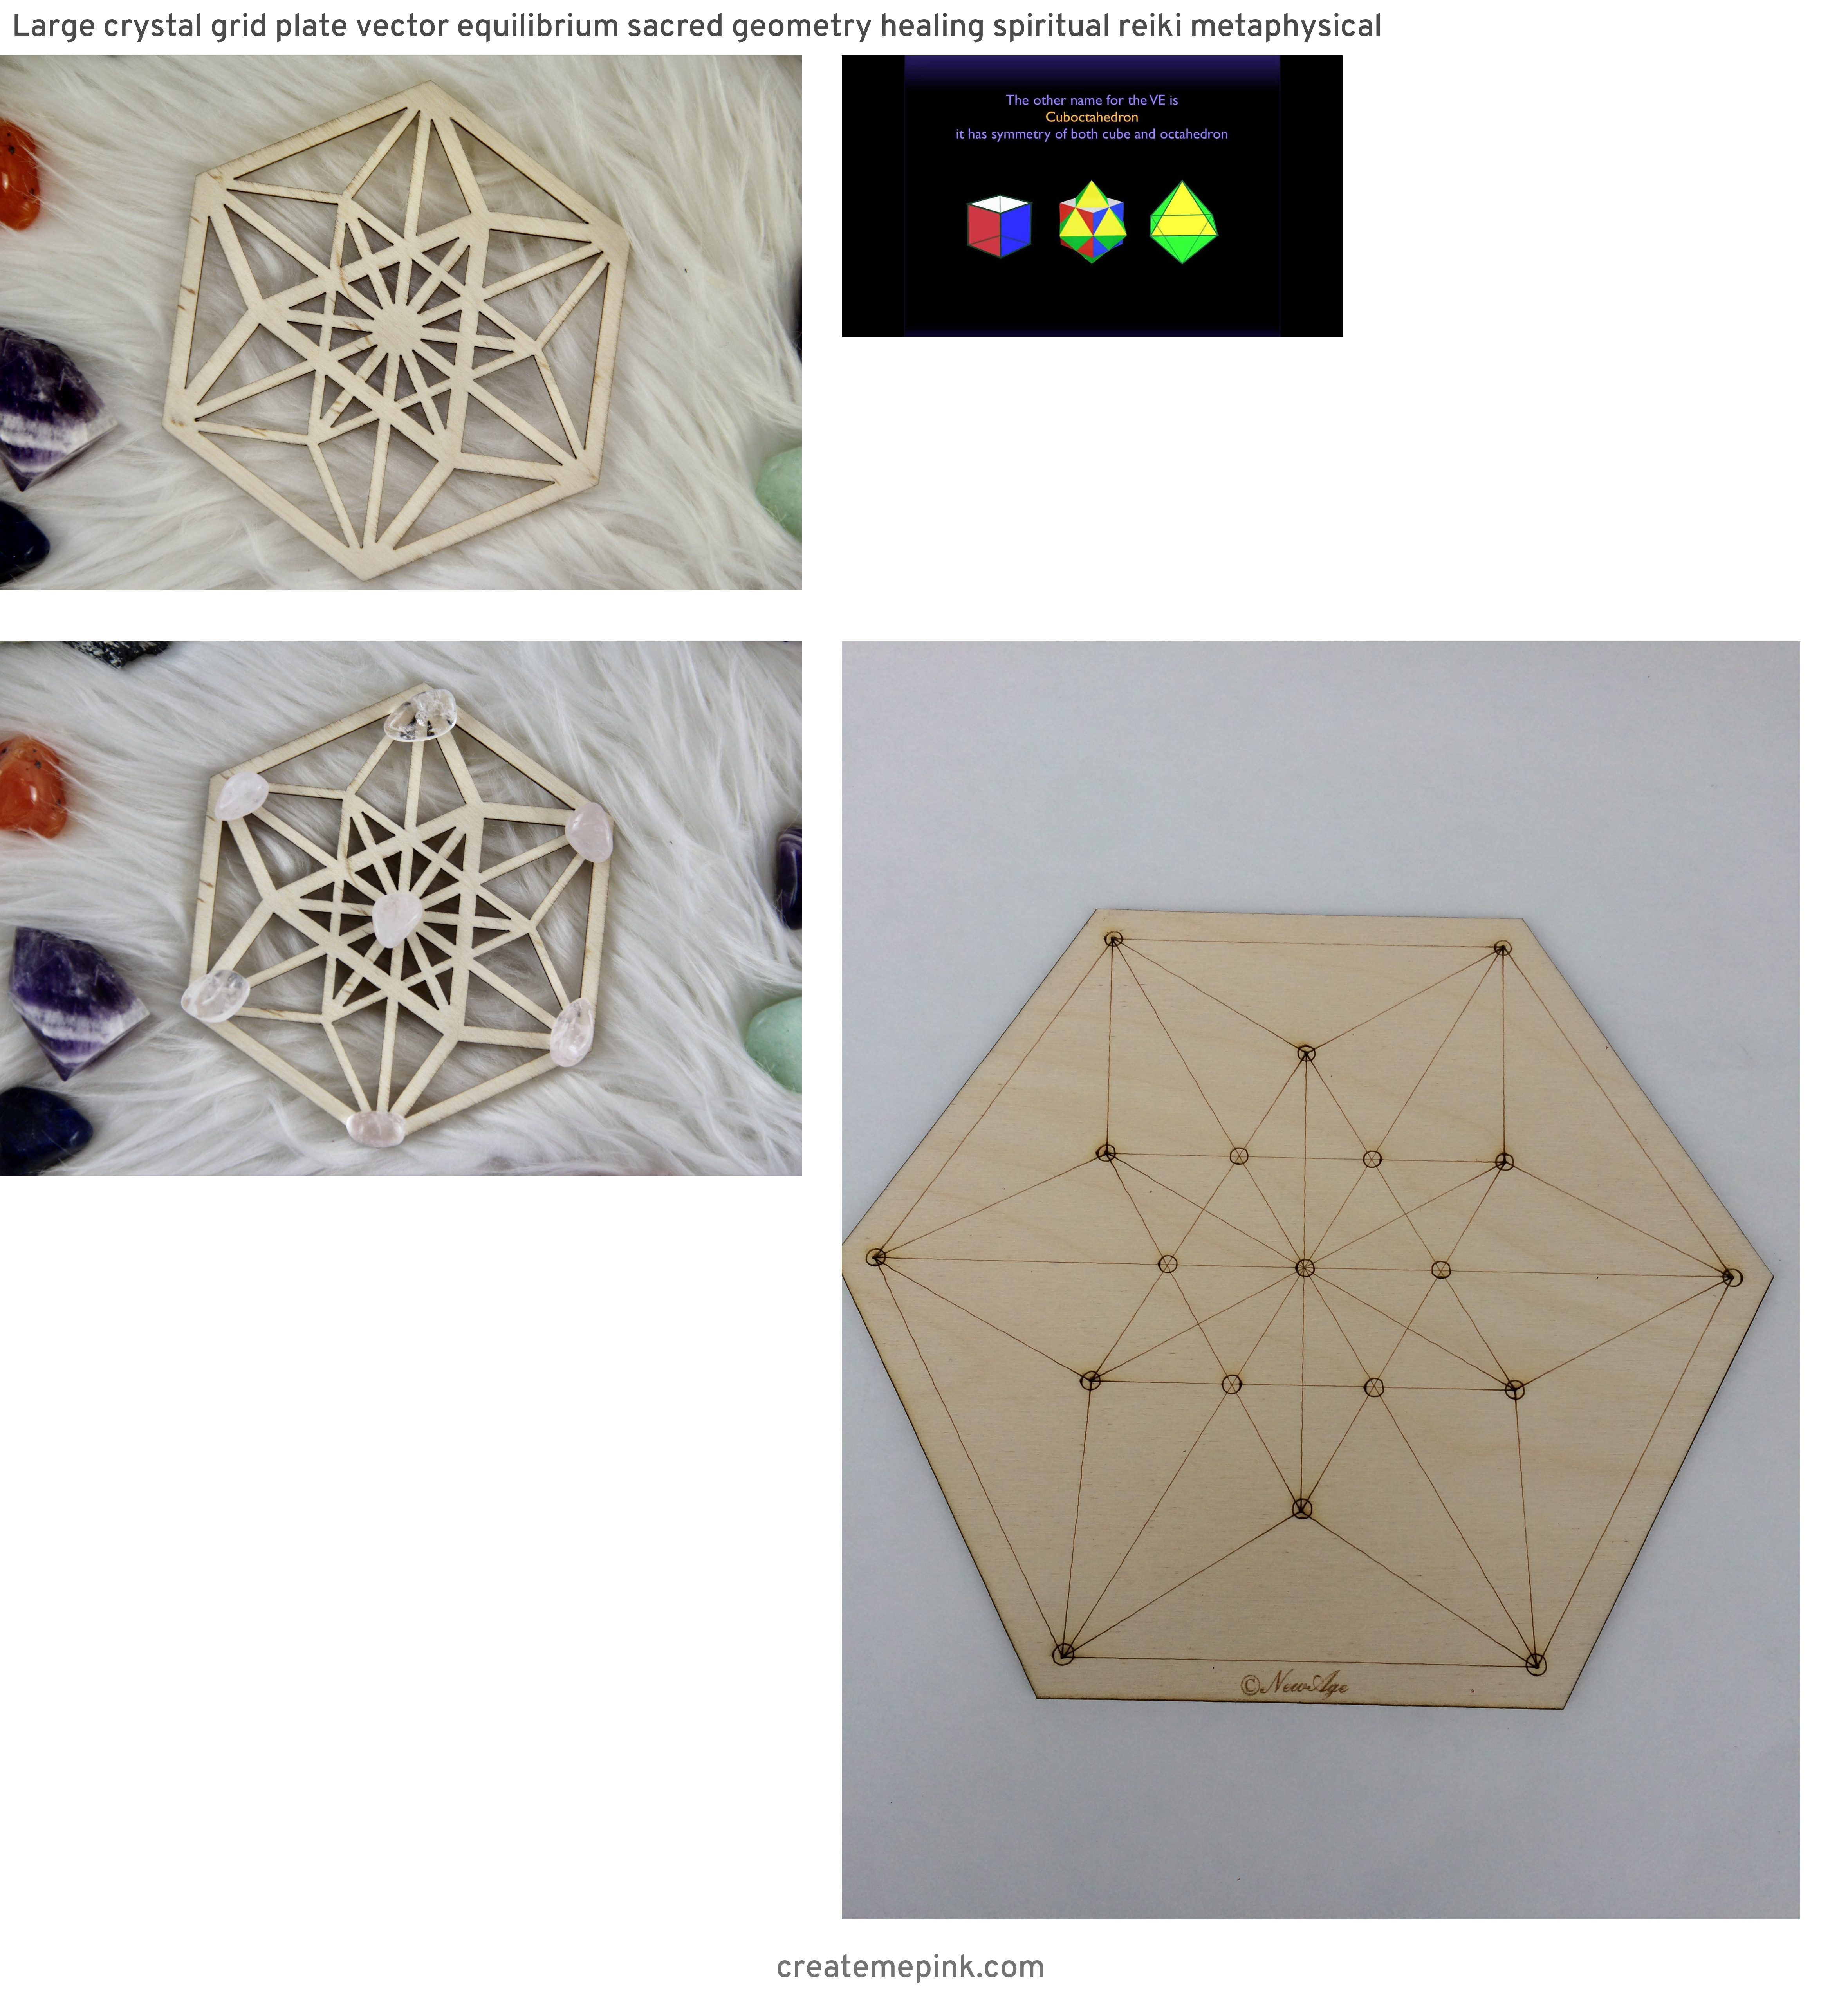 Vector Equilibrium Crystal: Large Crystal Grid Plate Vector Equilibrium Sacred Geometry Healing Spiritual Reiki Metaphysical